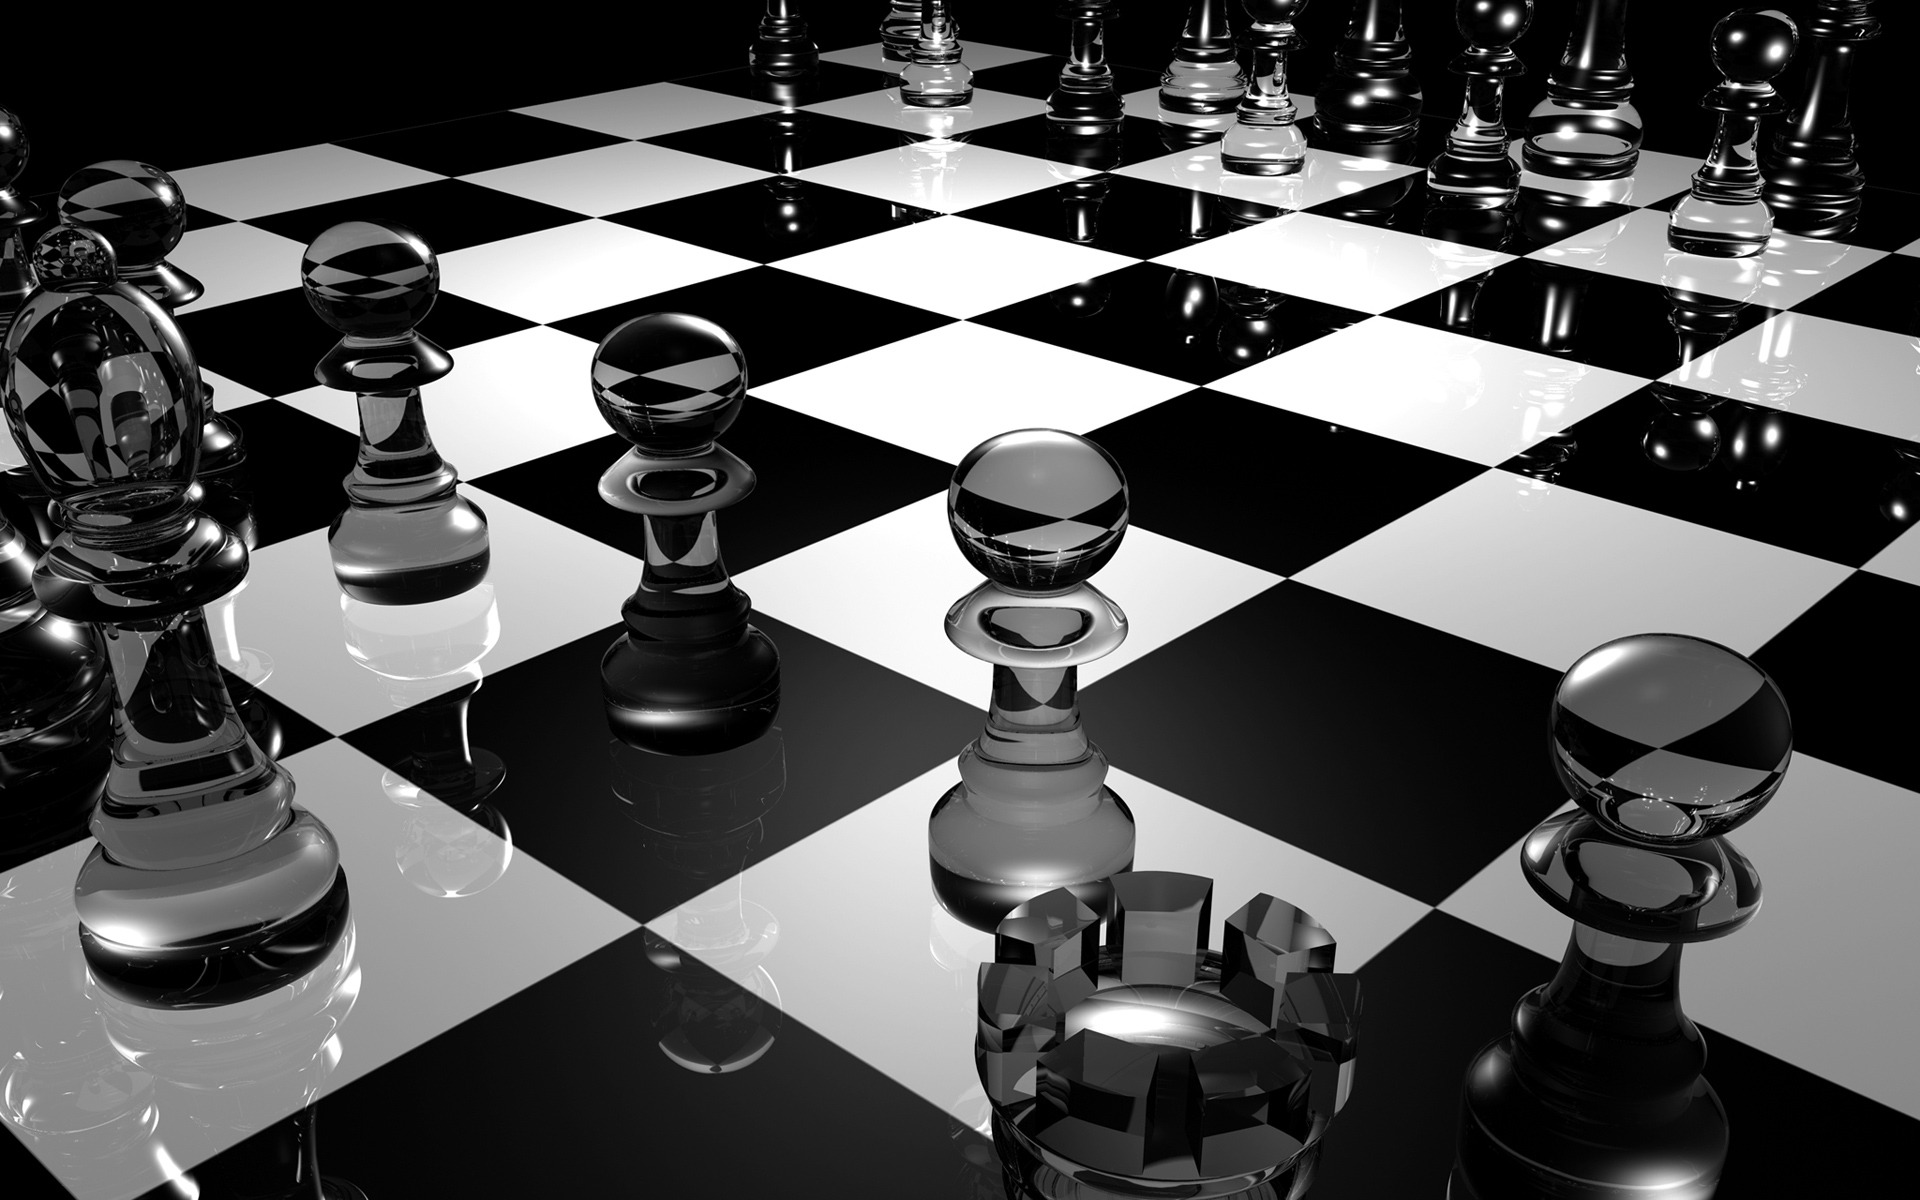 3D Chess Board Wallpaper Models Wallpapers